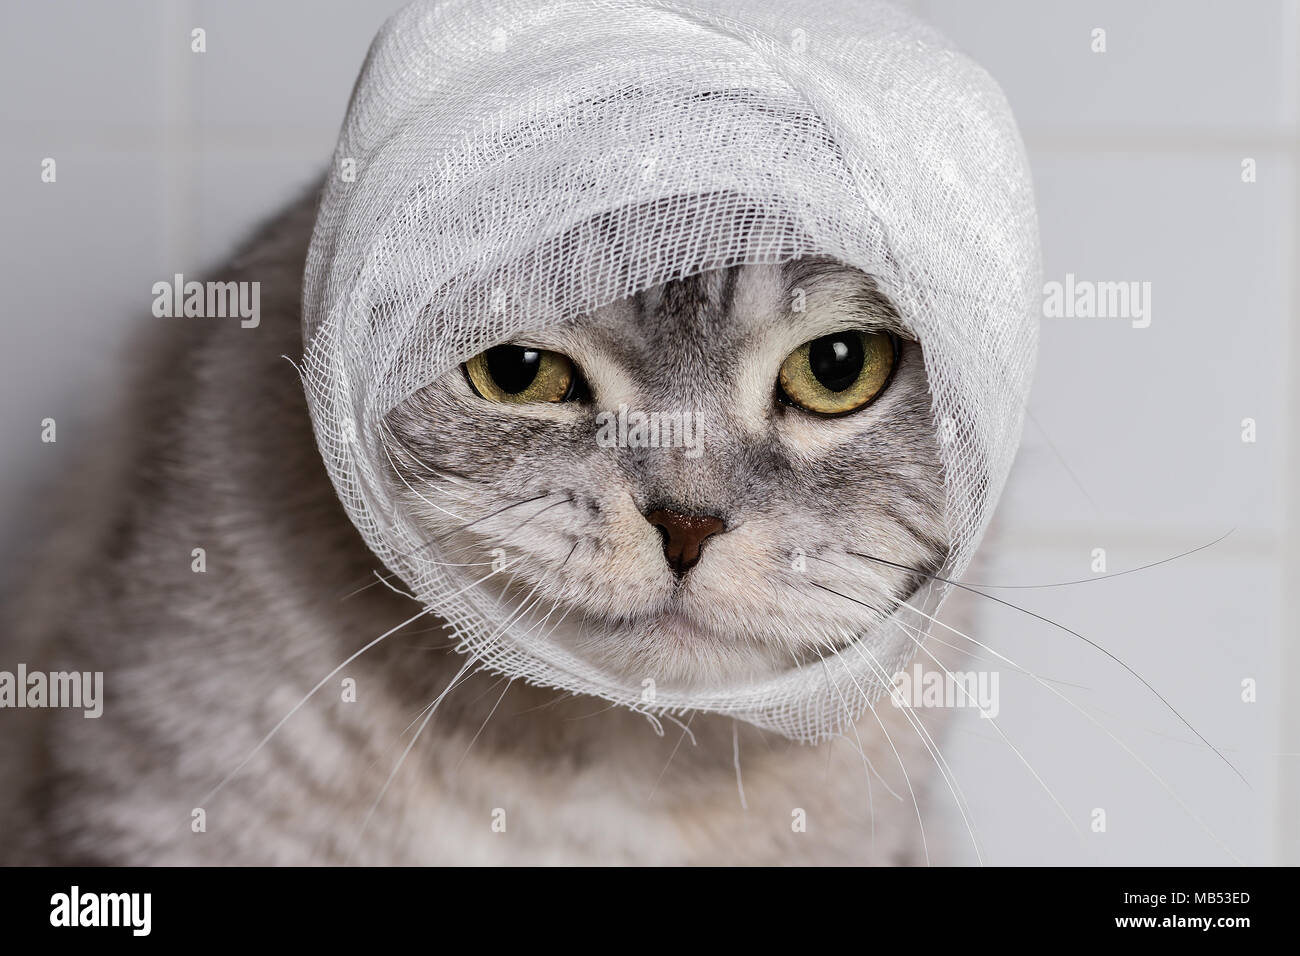 Domestic Cat With Bandage High Resolution Stock Photography and Images -  Alamy